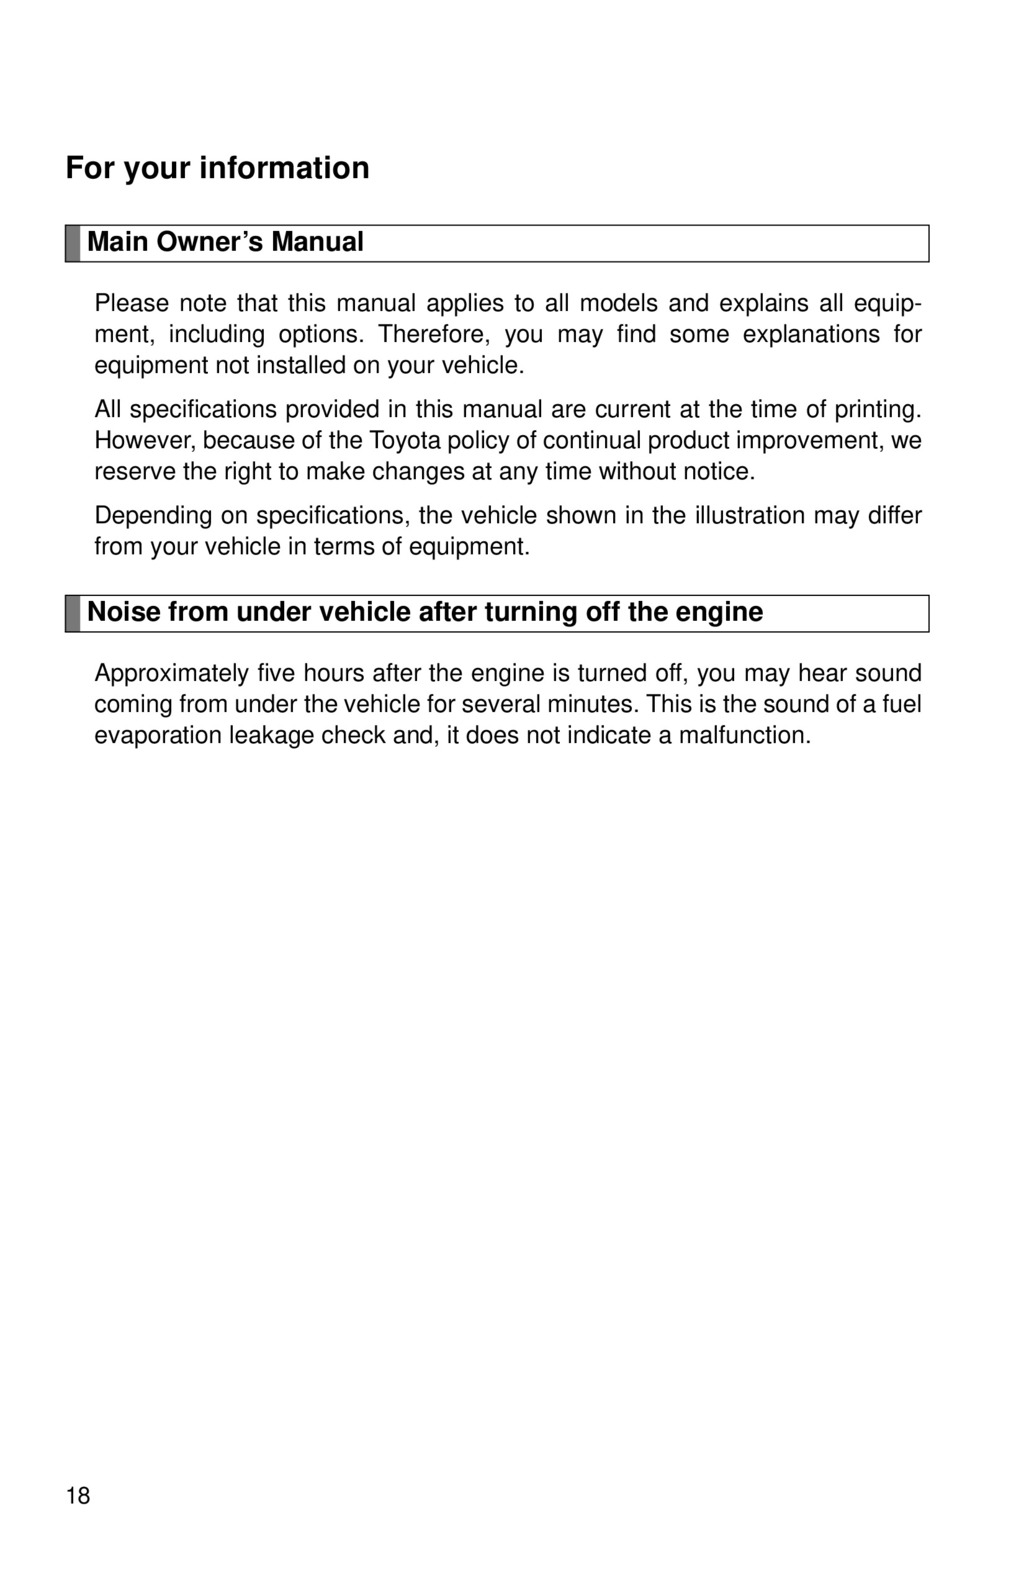 2012 Toyota Avalon owners manual